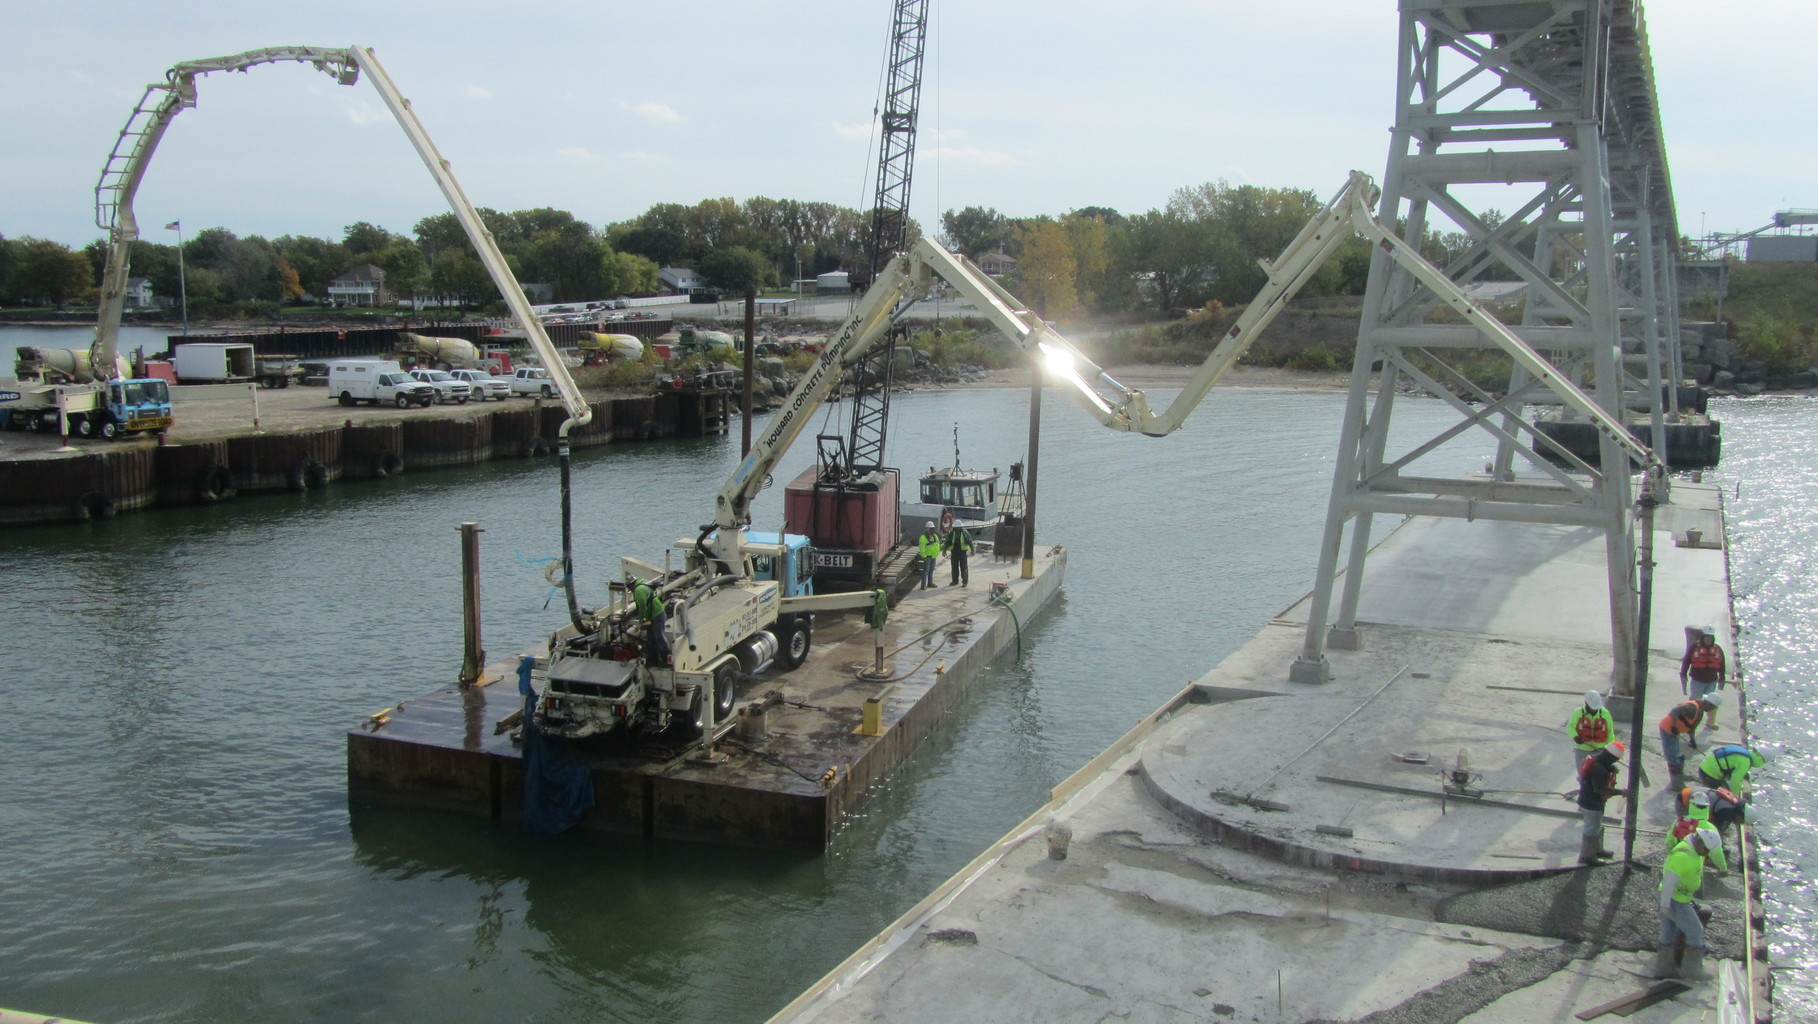 Amazing concrete deck repair by using two concrete pumps. One is the largest in Ohio, the other is floating on a barge!!